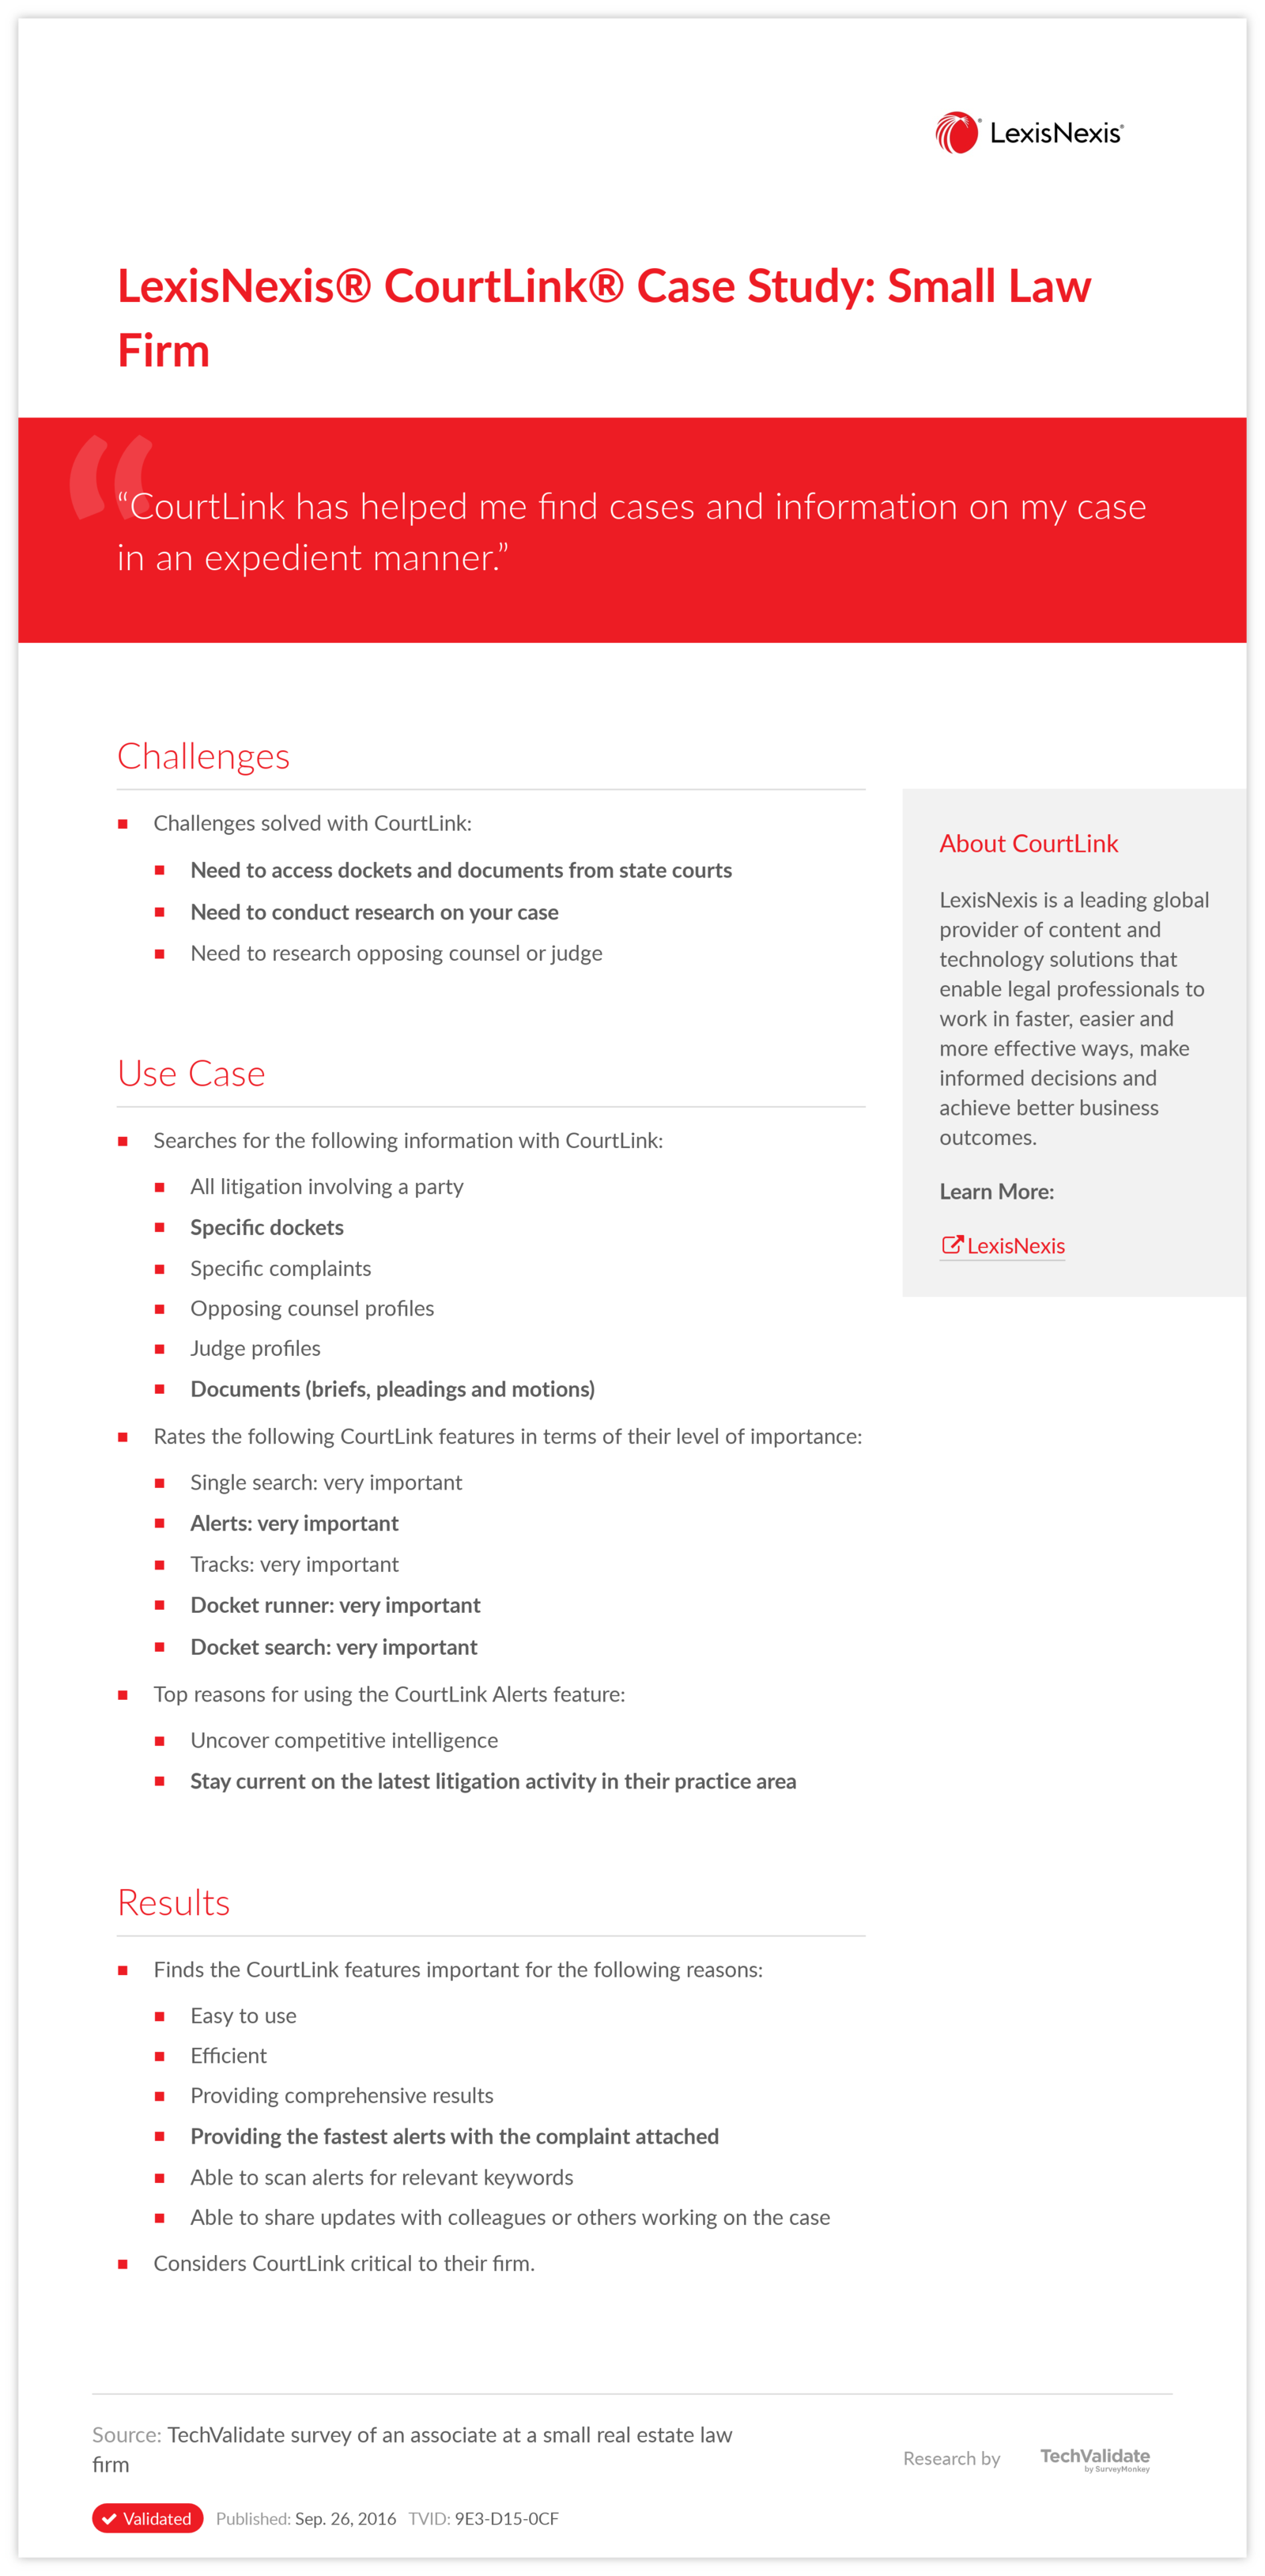 LexisNexis® CourtLink® Case Study: Small Law Firm